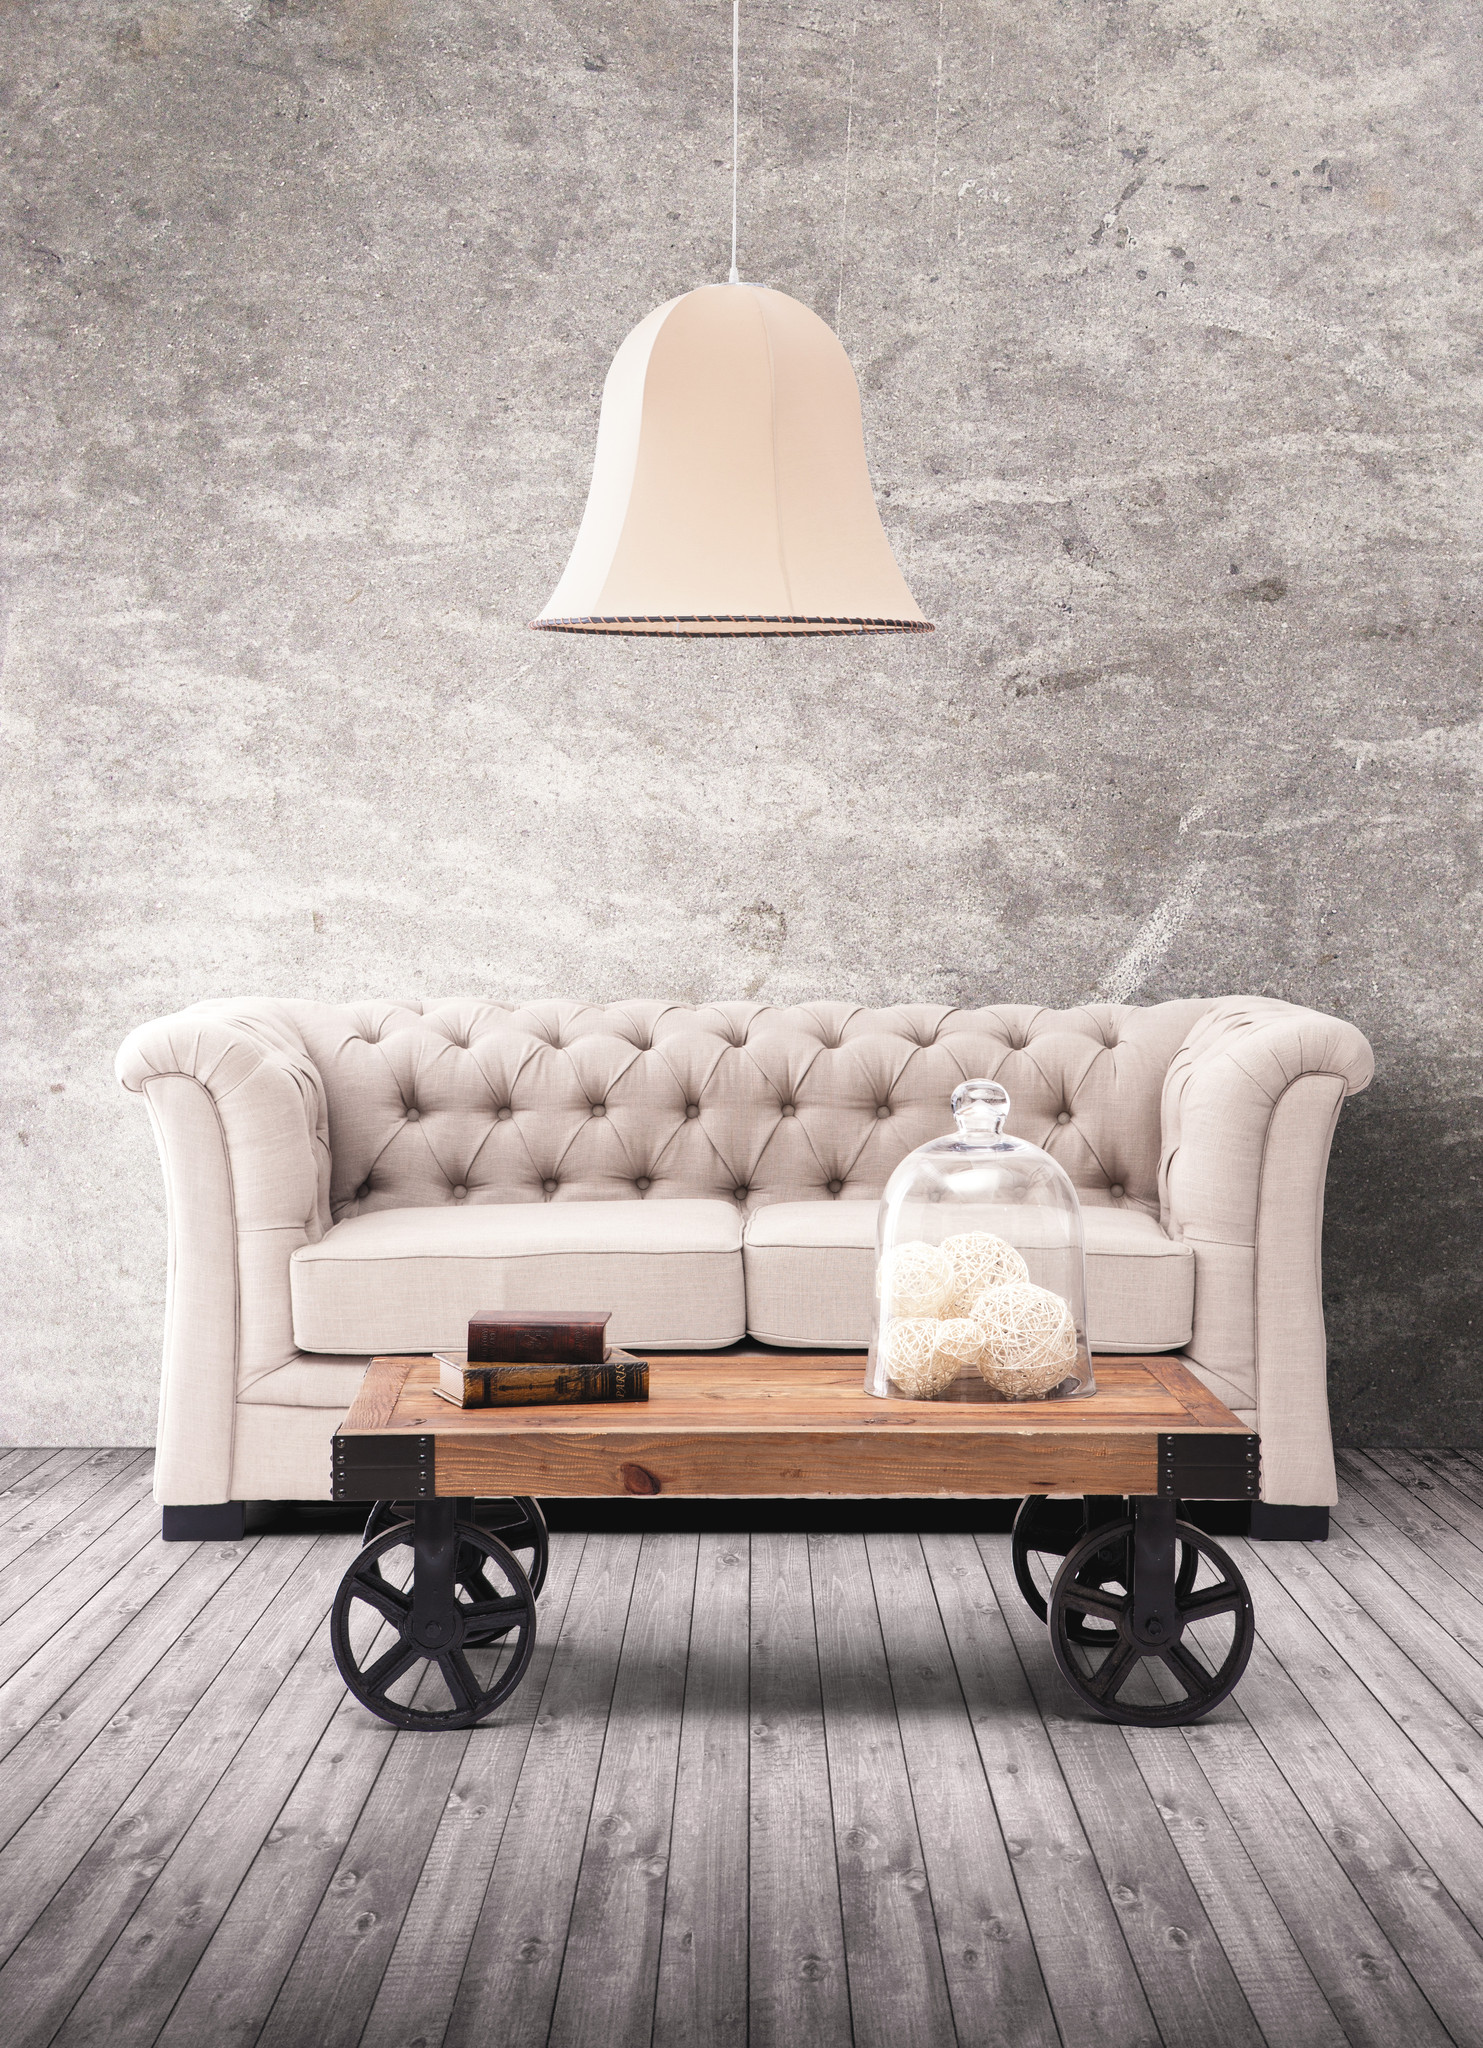 Industrial Decor Ideas Amp Design Guide Lazy Loft By Froy